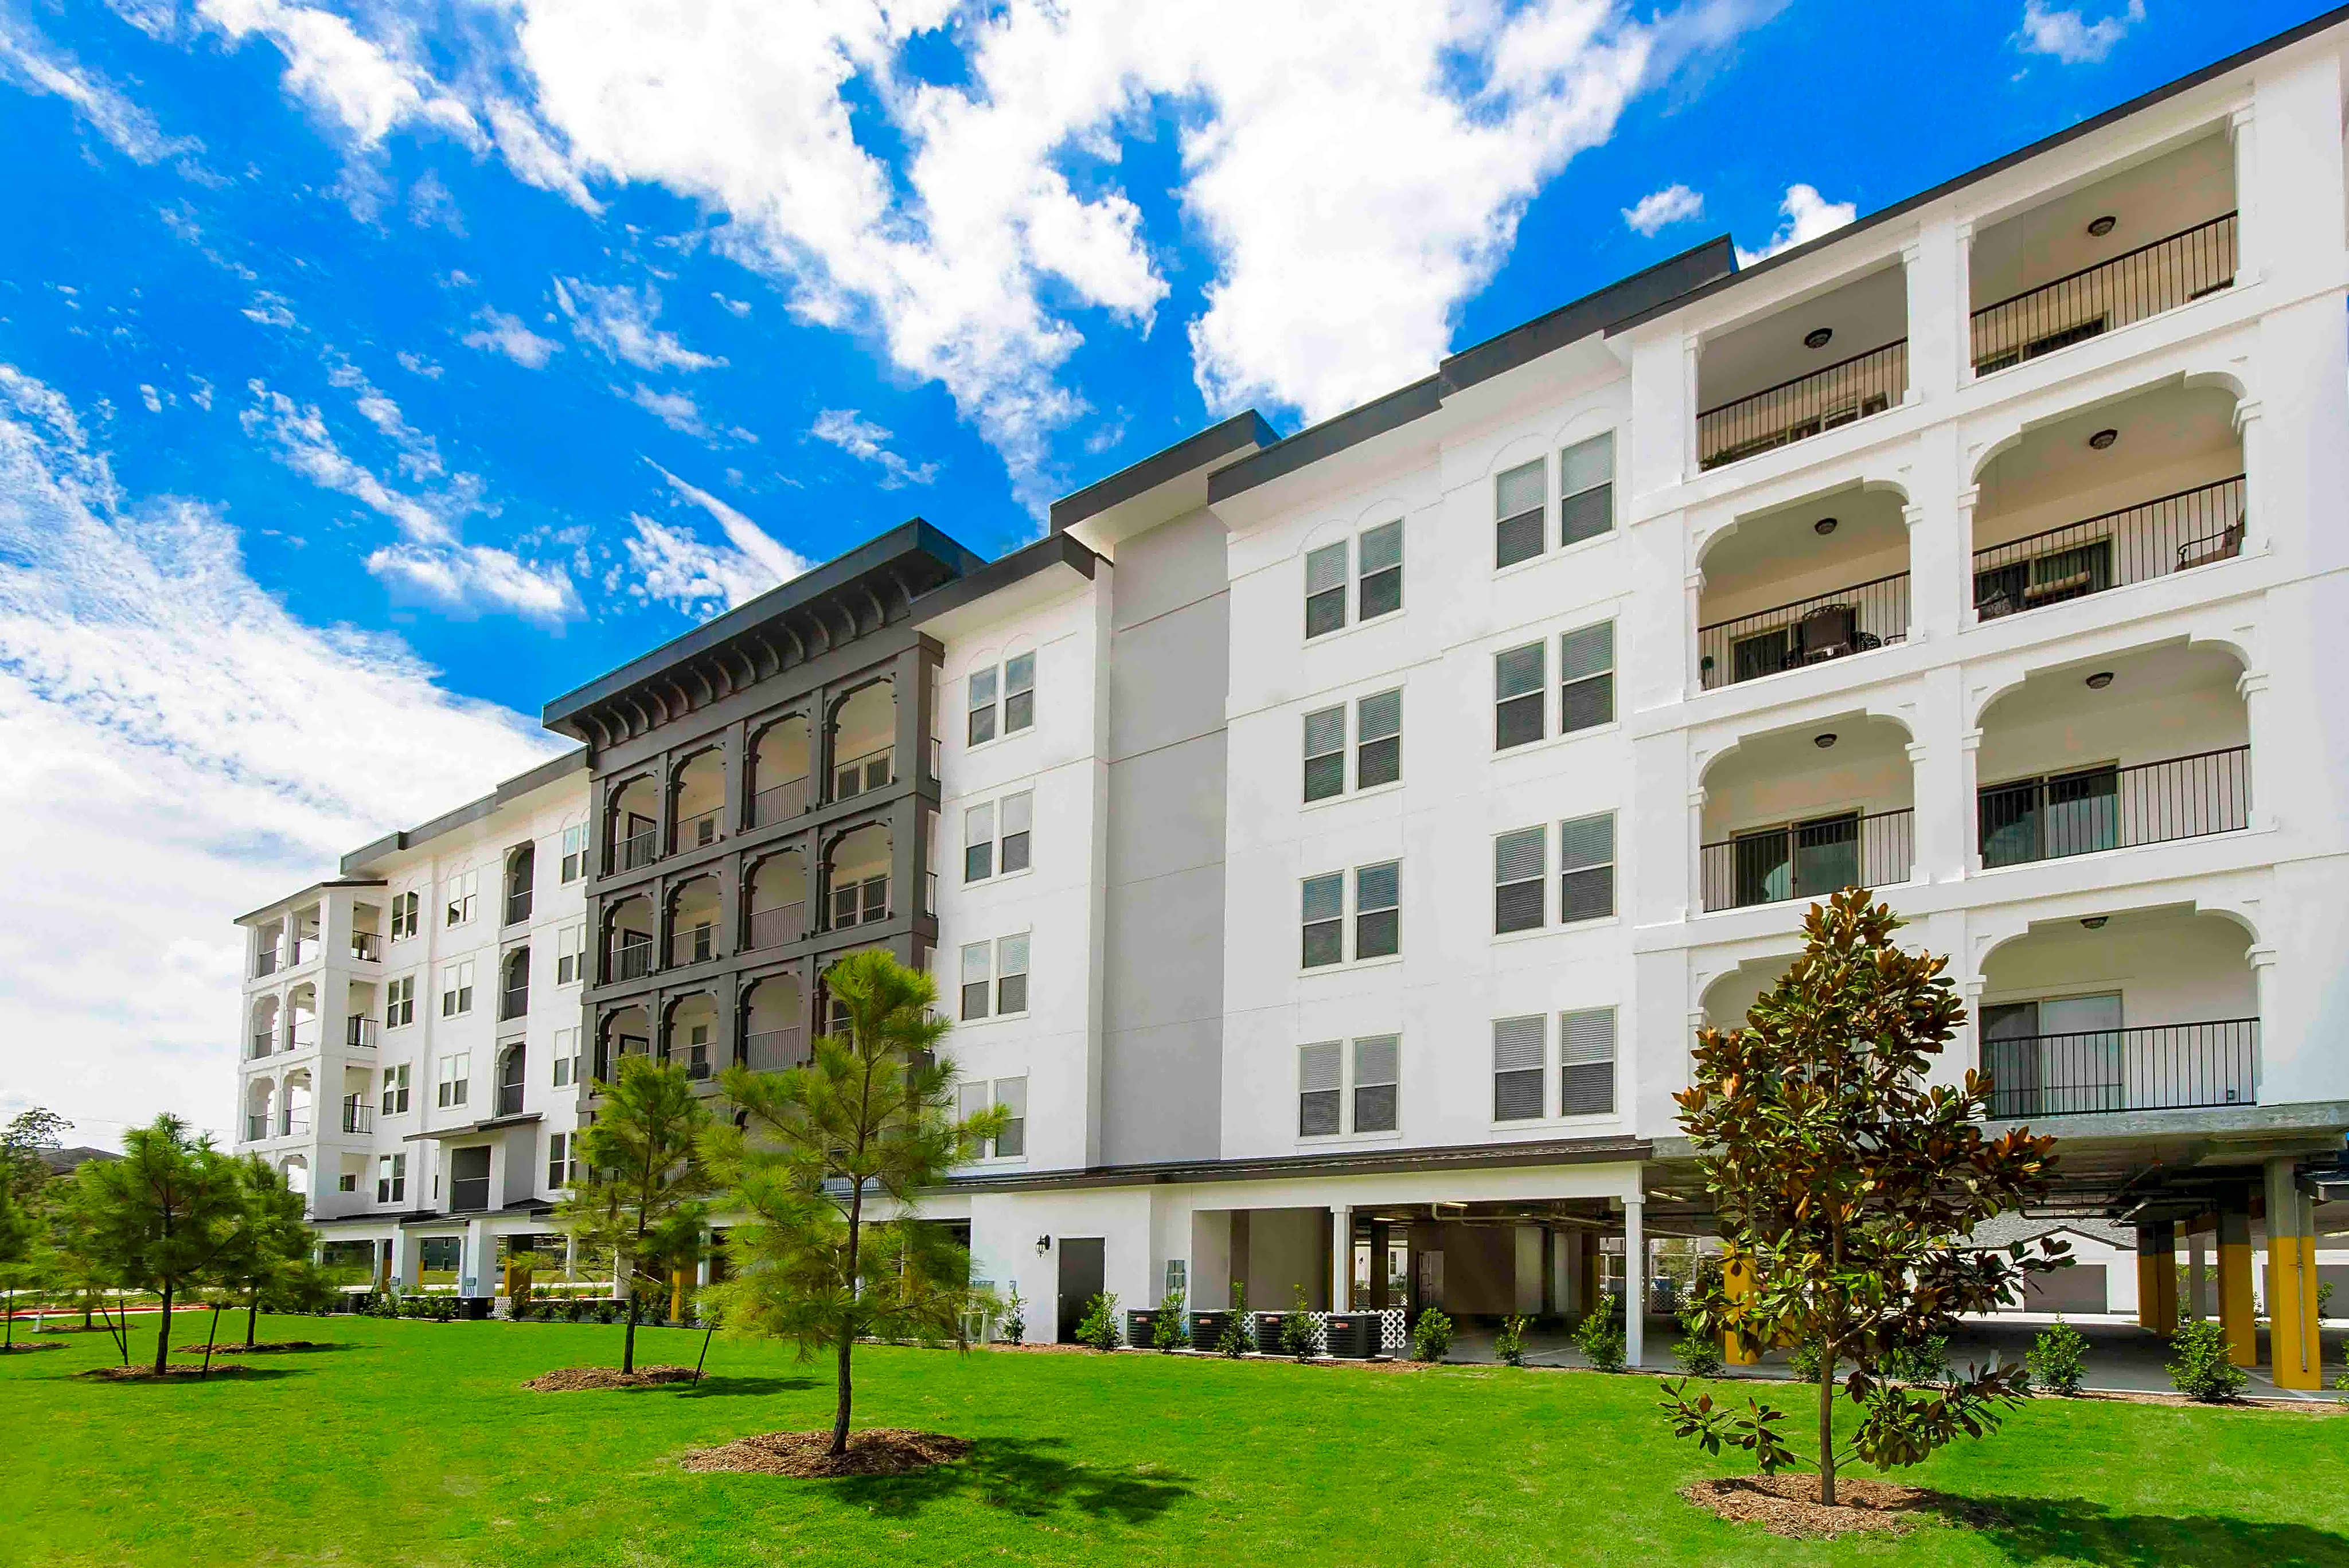 Apartments Near NHMCC The Towers Woodland for North Harris Montgomery Community College Students in The Woodlands, TX